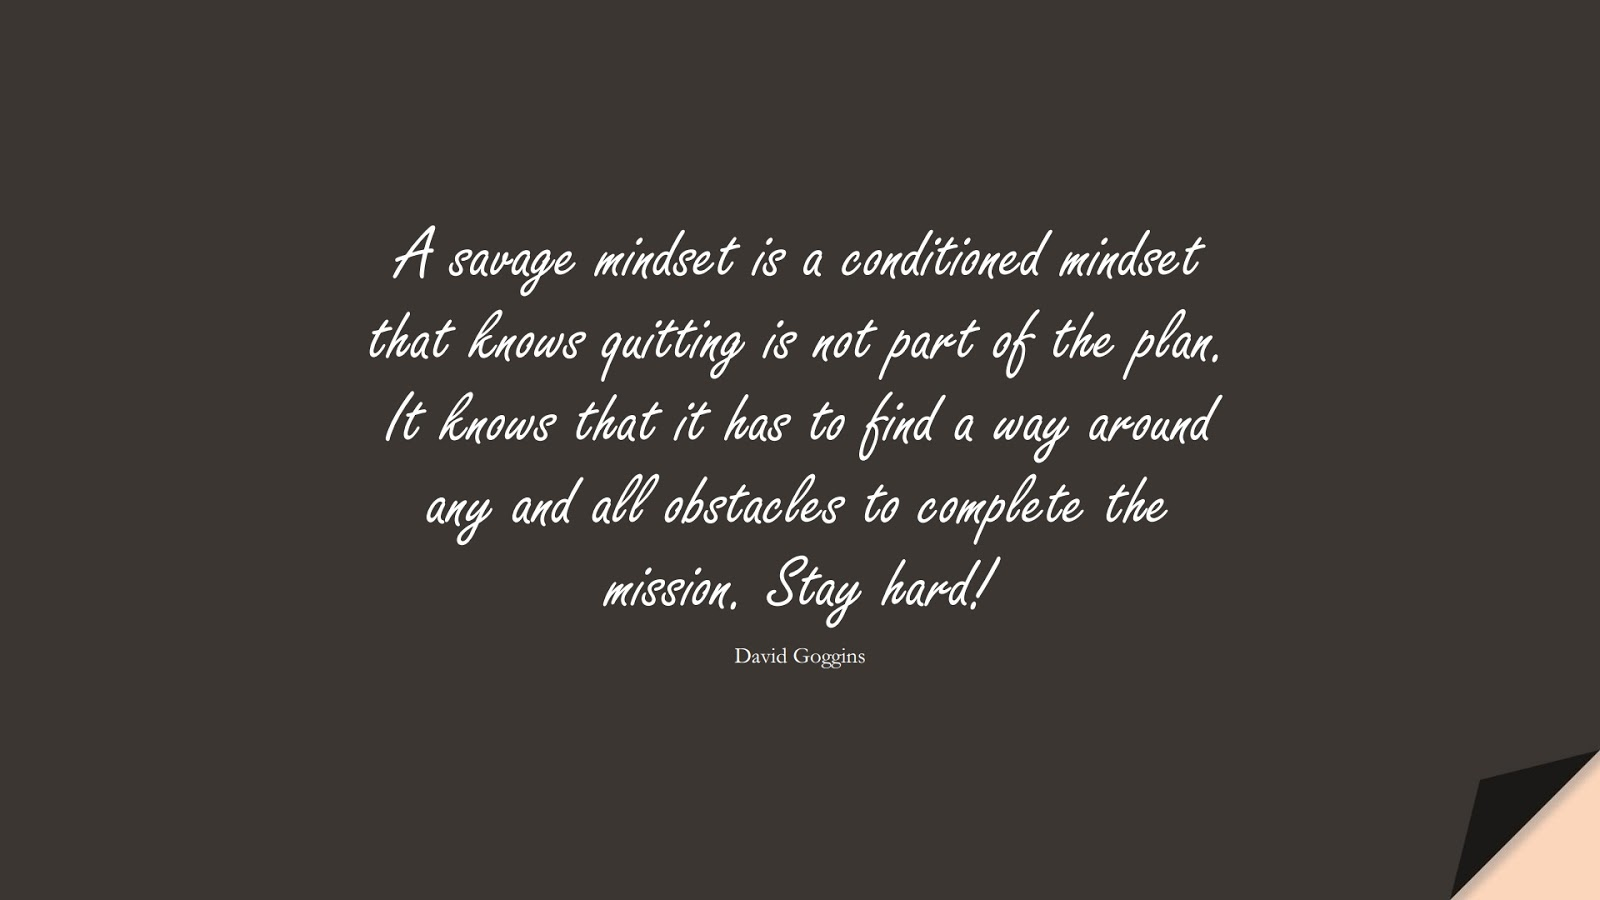 A savage mindset is a conditioned mindset that knows quitting is not part of the plan. It knows that it has to find a way around any and all obstacles to complete the mission. Stay hard! (David Goggins);  #CourageQuotes